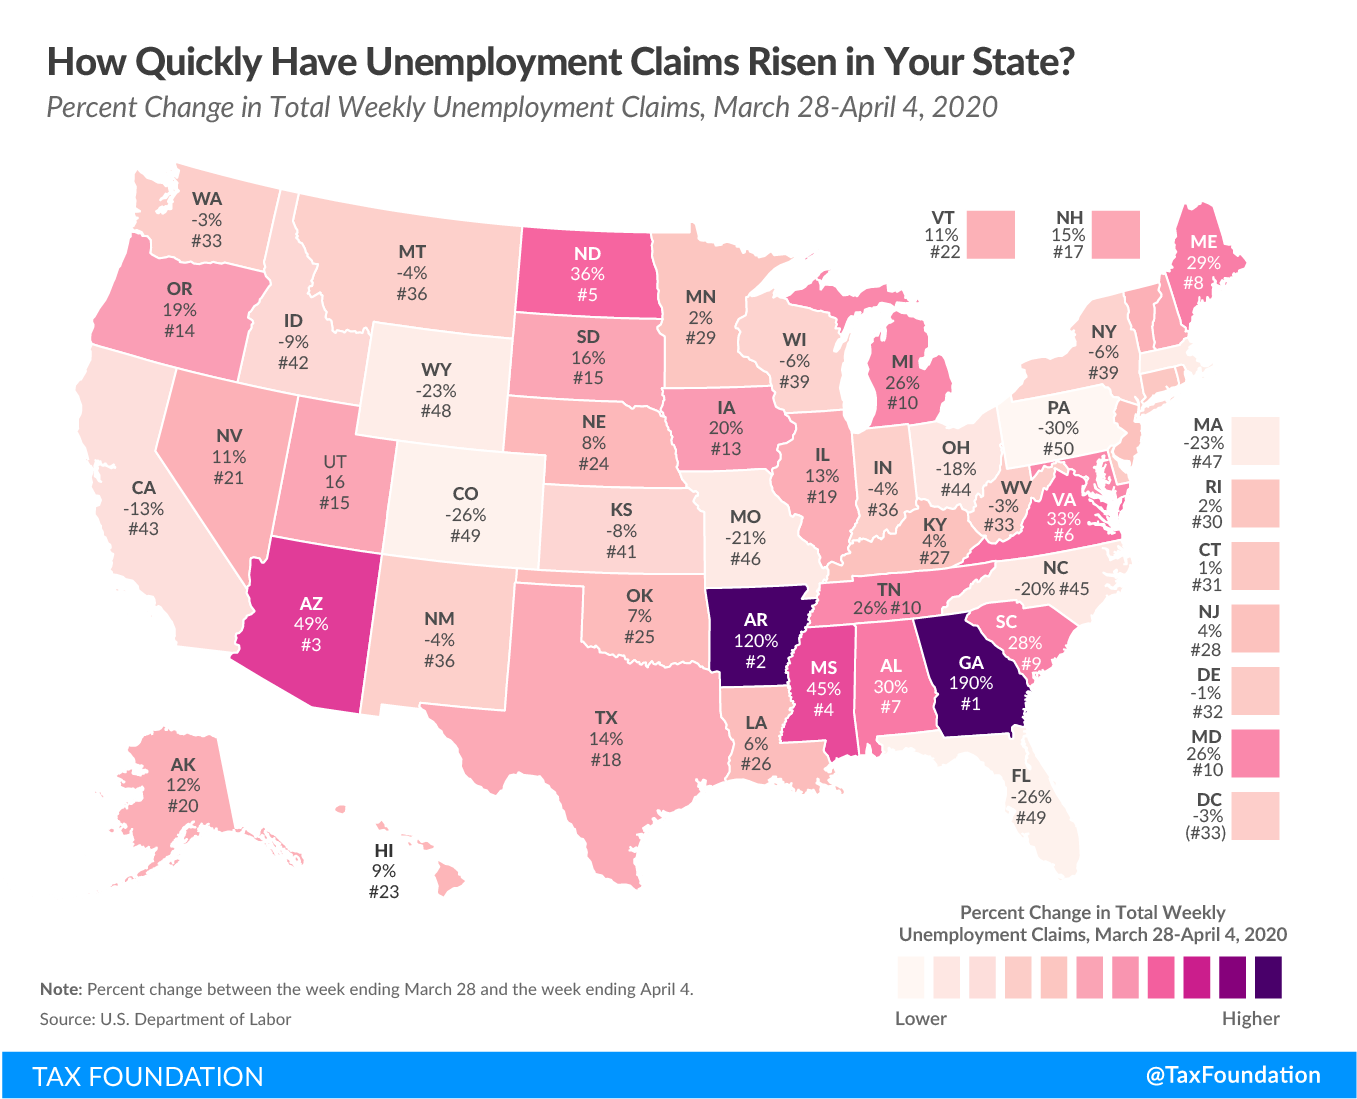 How Quickly Have Unemployment Claims Risen in Your State? Unemployment insurance claims, increase in unemployment claims, increase in unemployment insurance claims